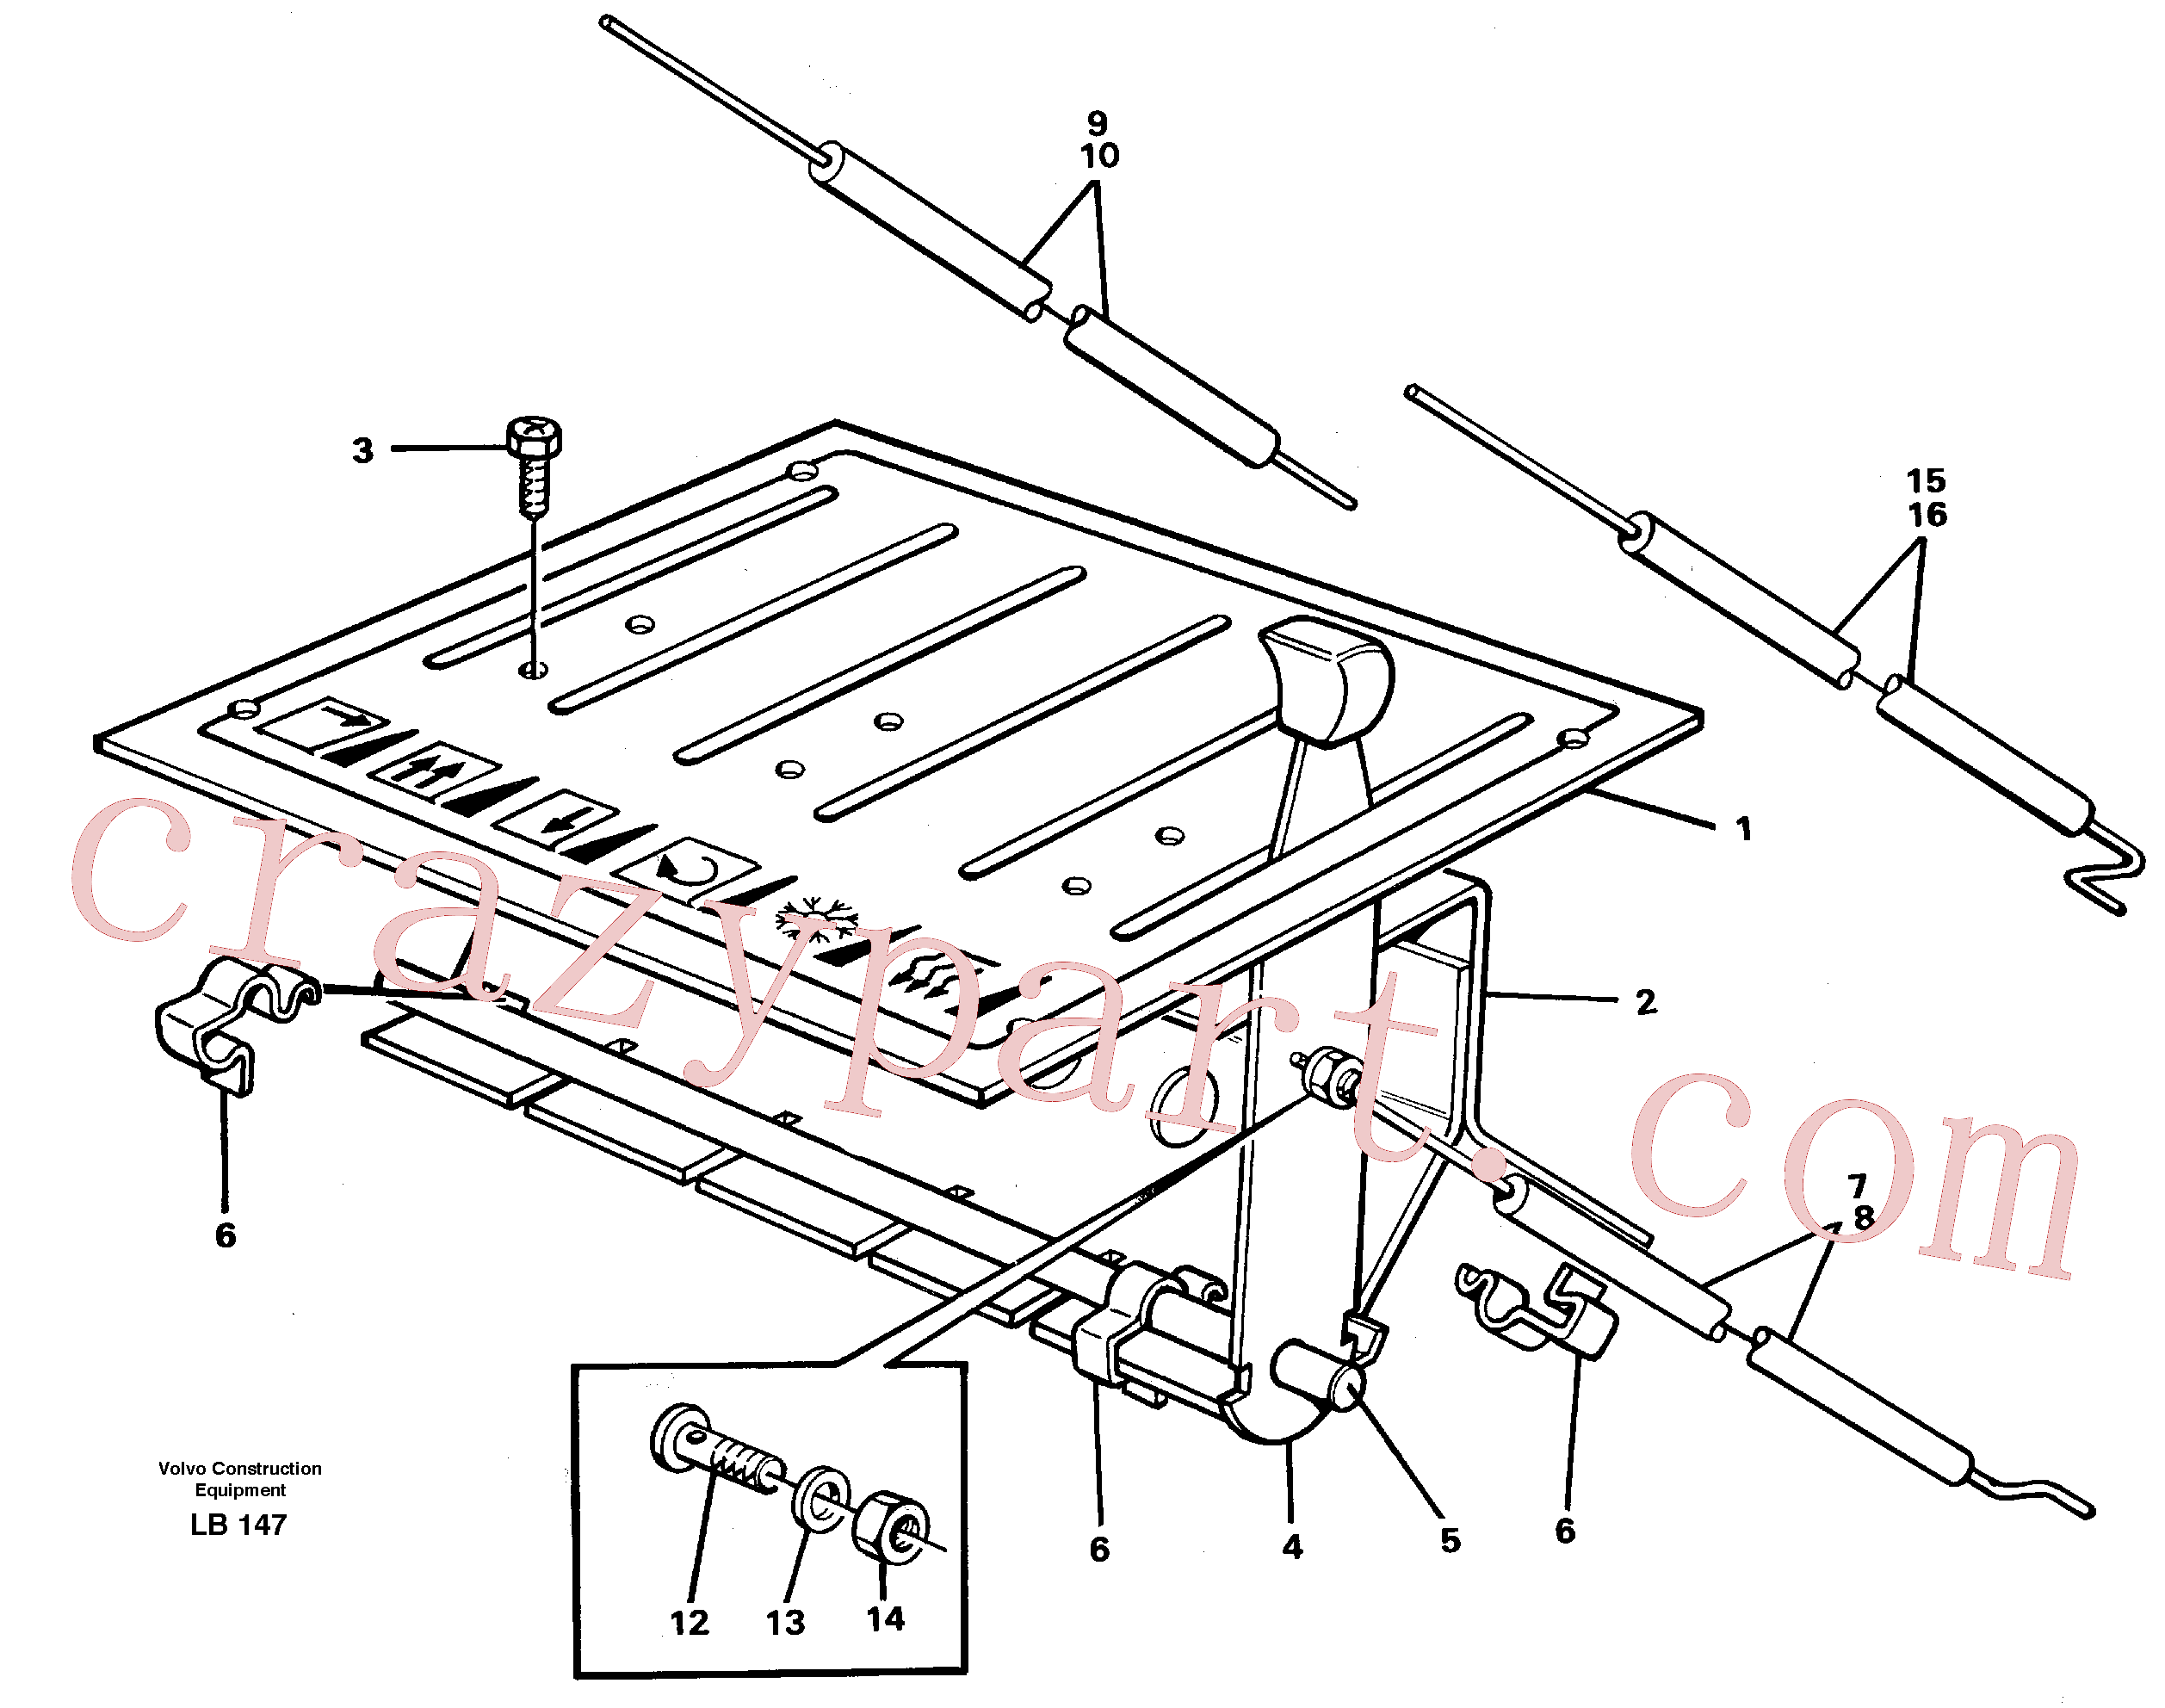 VOE14246694 for Volvo Heater control(LB147 assembly)